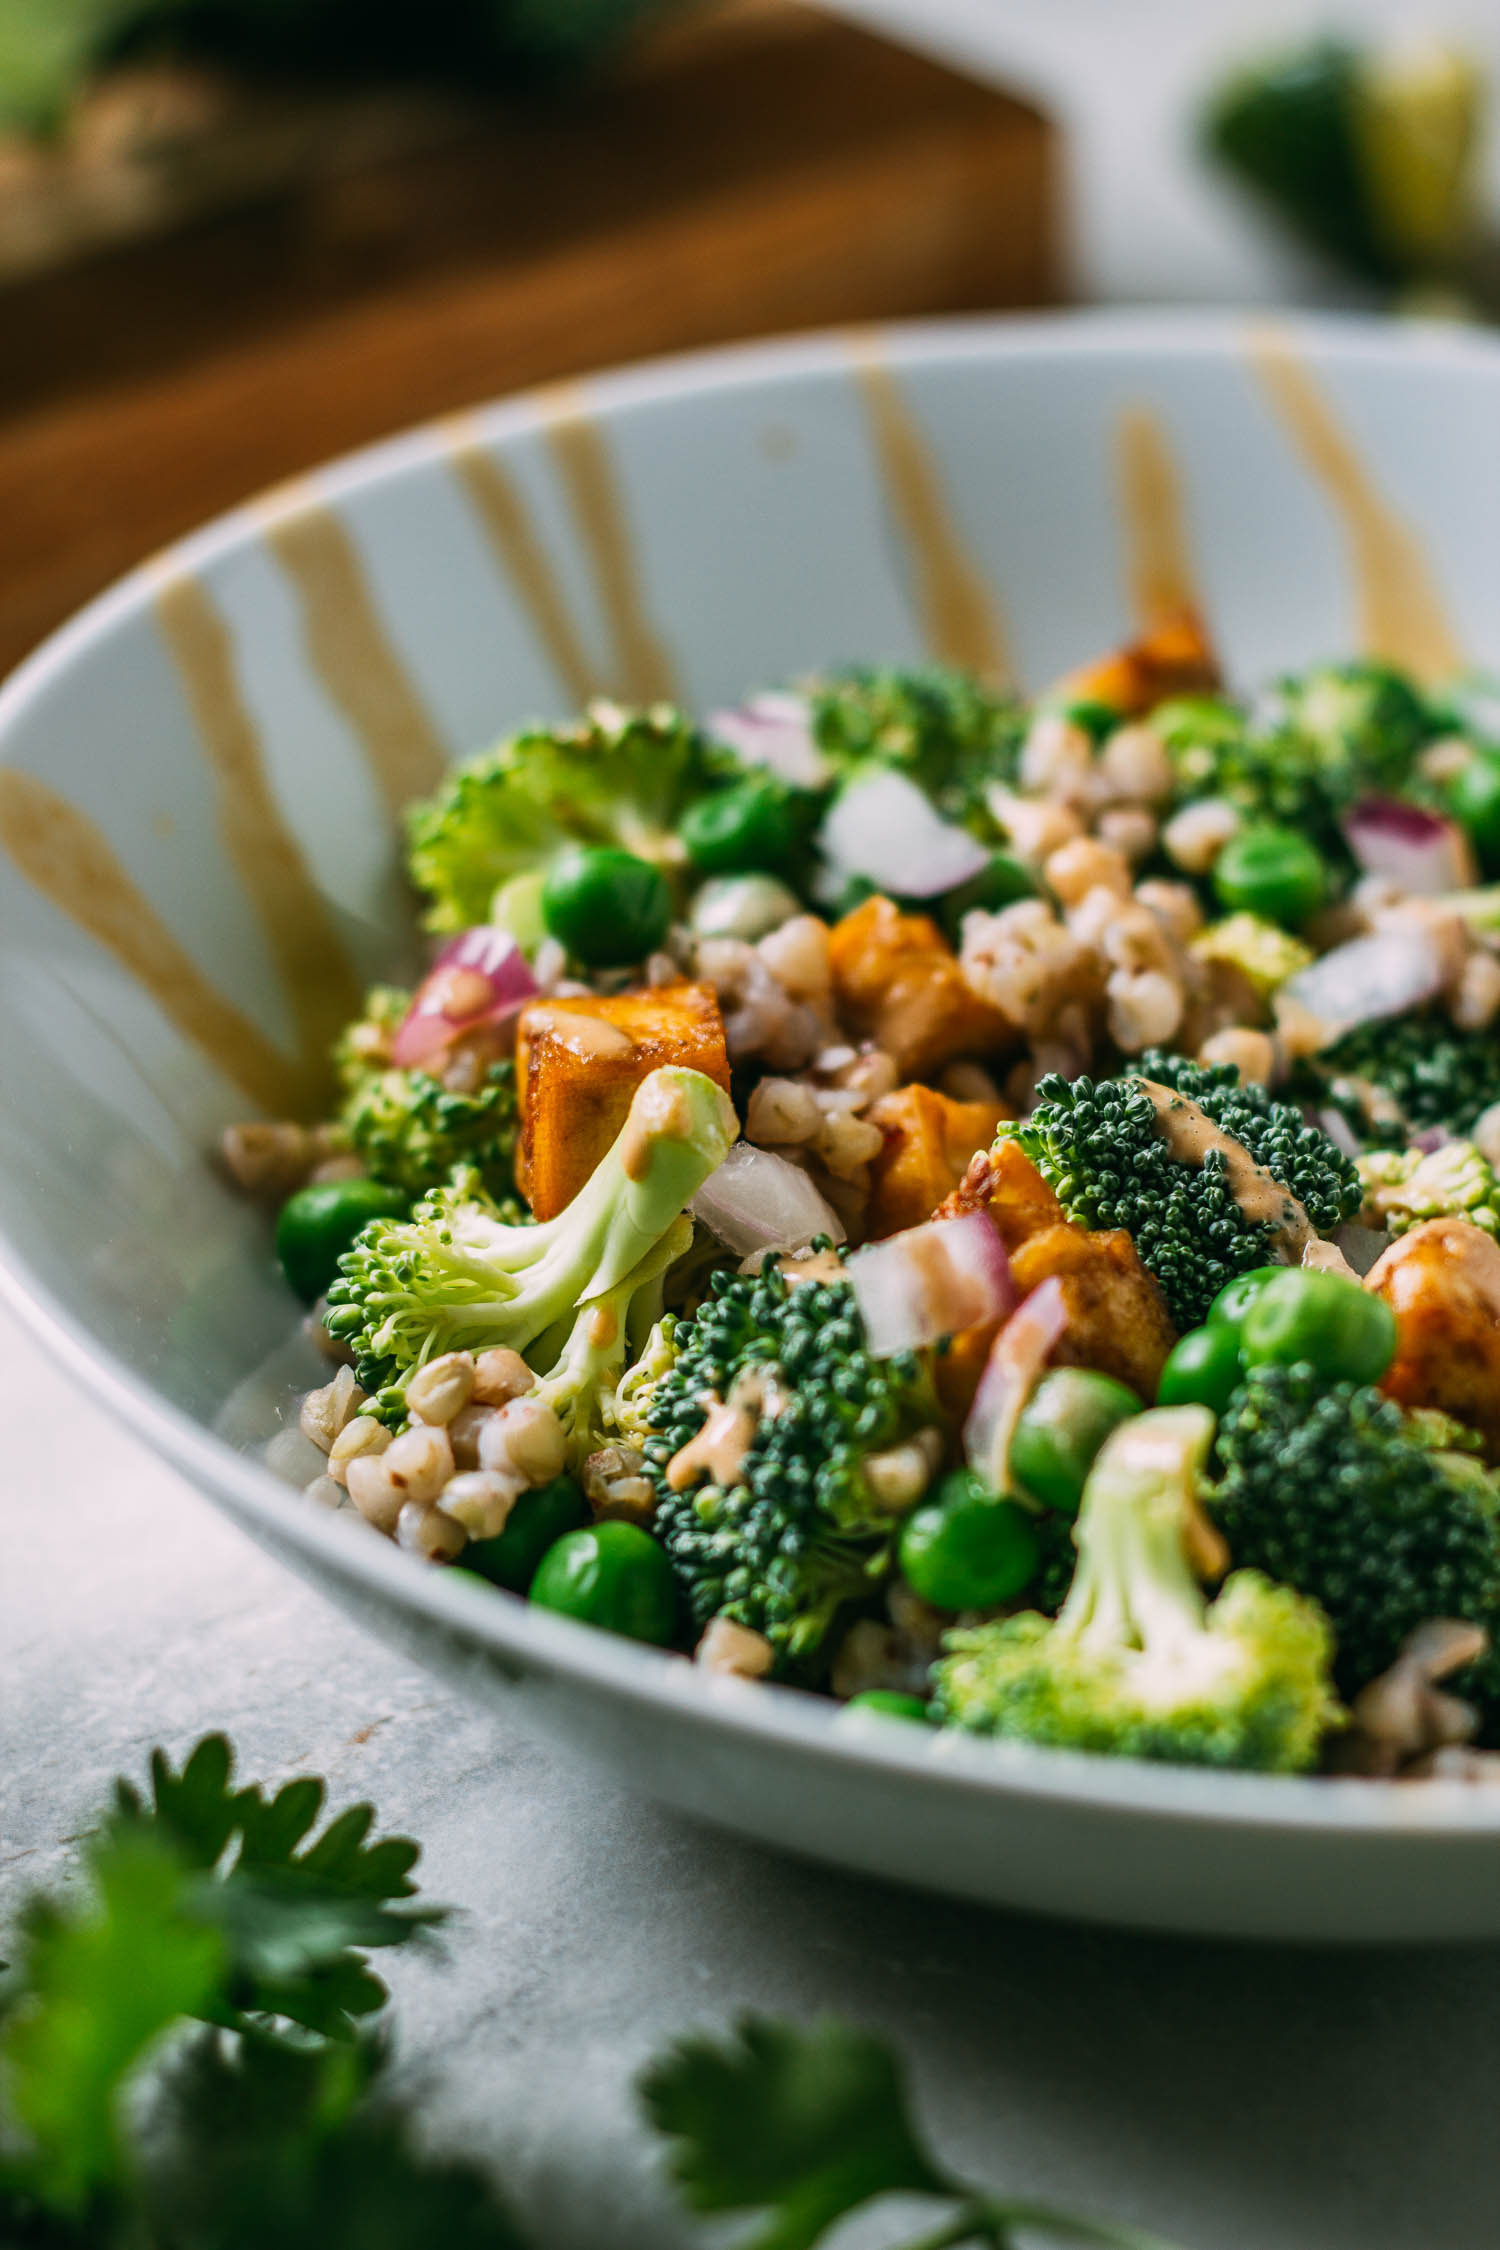 Peanutty Broccoli Buckwheat Bowl #plant-based, #oil-free, #vegan, #broccoli, #tofu, #bowl, #peanut, #sauce, #buckwheat #groats #salad, #gluten-free, #dairy-free, #vegetarian, #wfpbno, #wfpb, #Asian #recipe #Thai #recipes #dinner #lunch